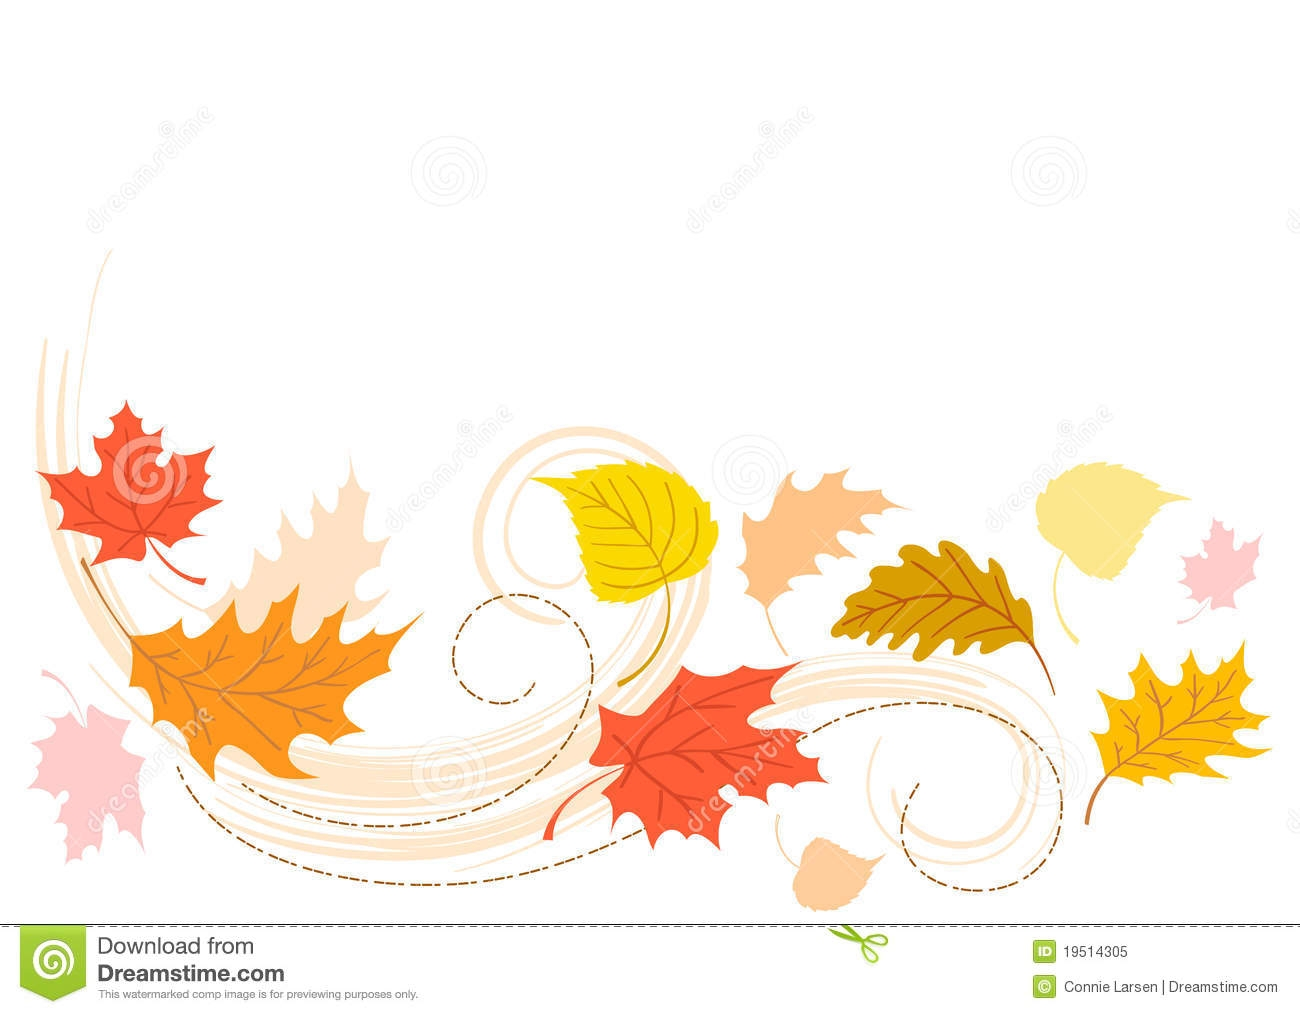 Rustling clipart vector free Blowing Leaves Clipart | Free download best Blowing Leaves ... vector free